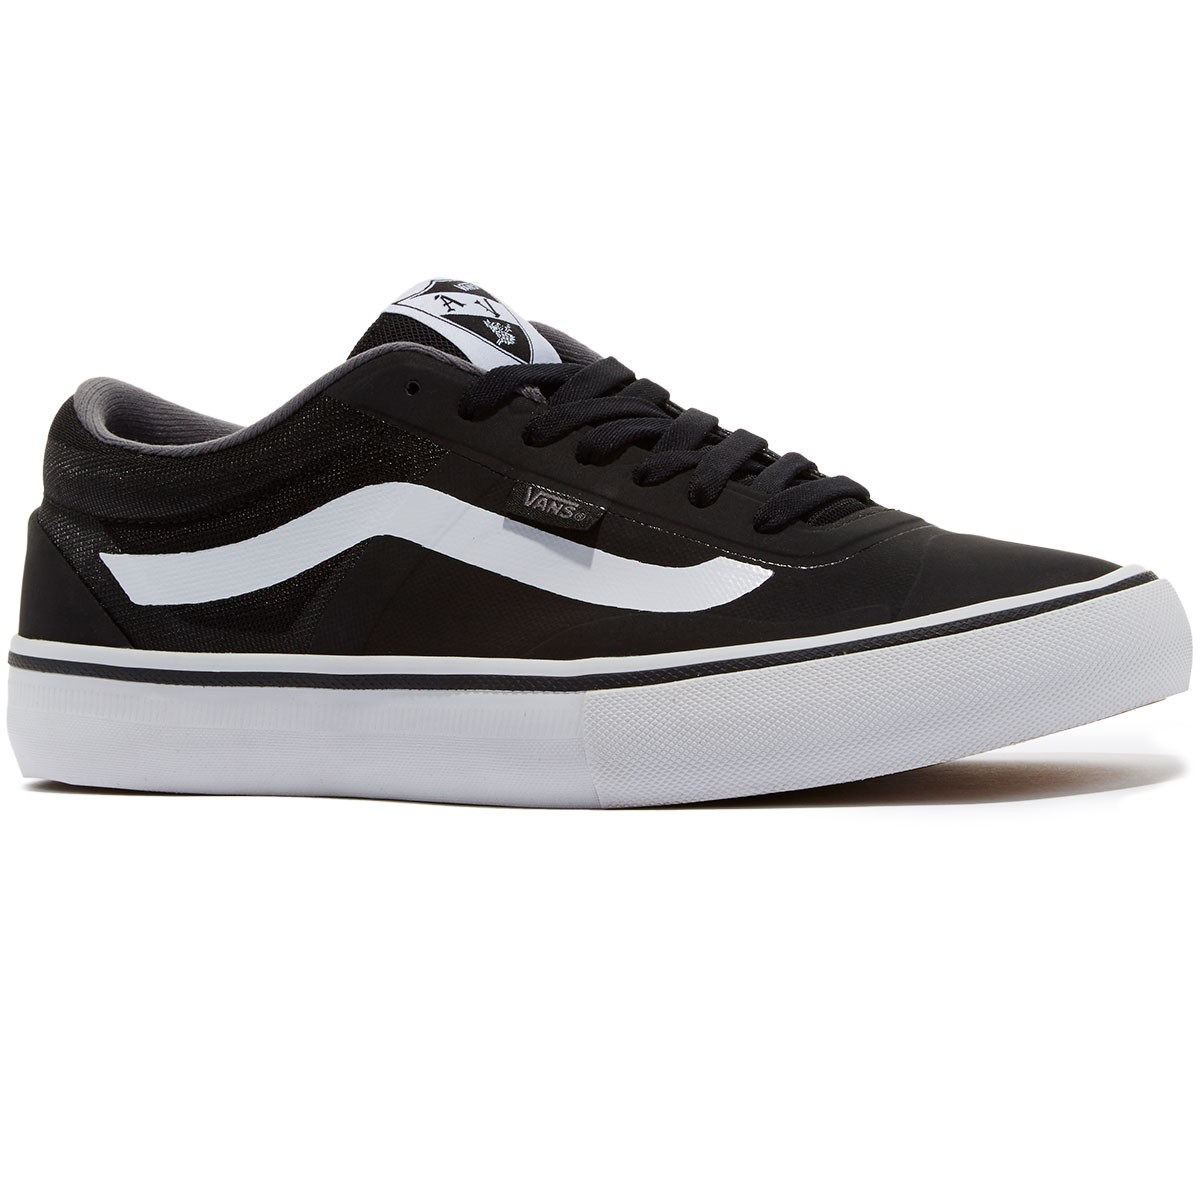 4145ba613a82 Vans AV RapidWeld Pro Lite Shoes - Black White - 8.0